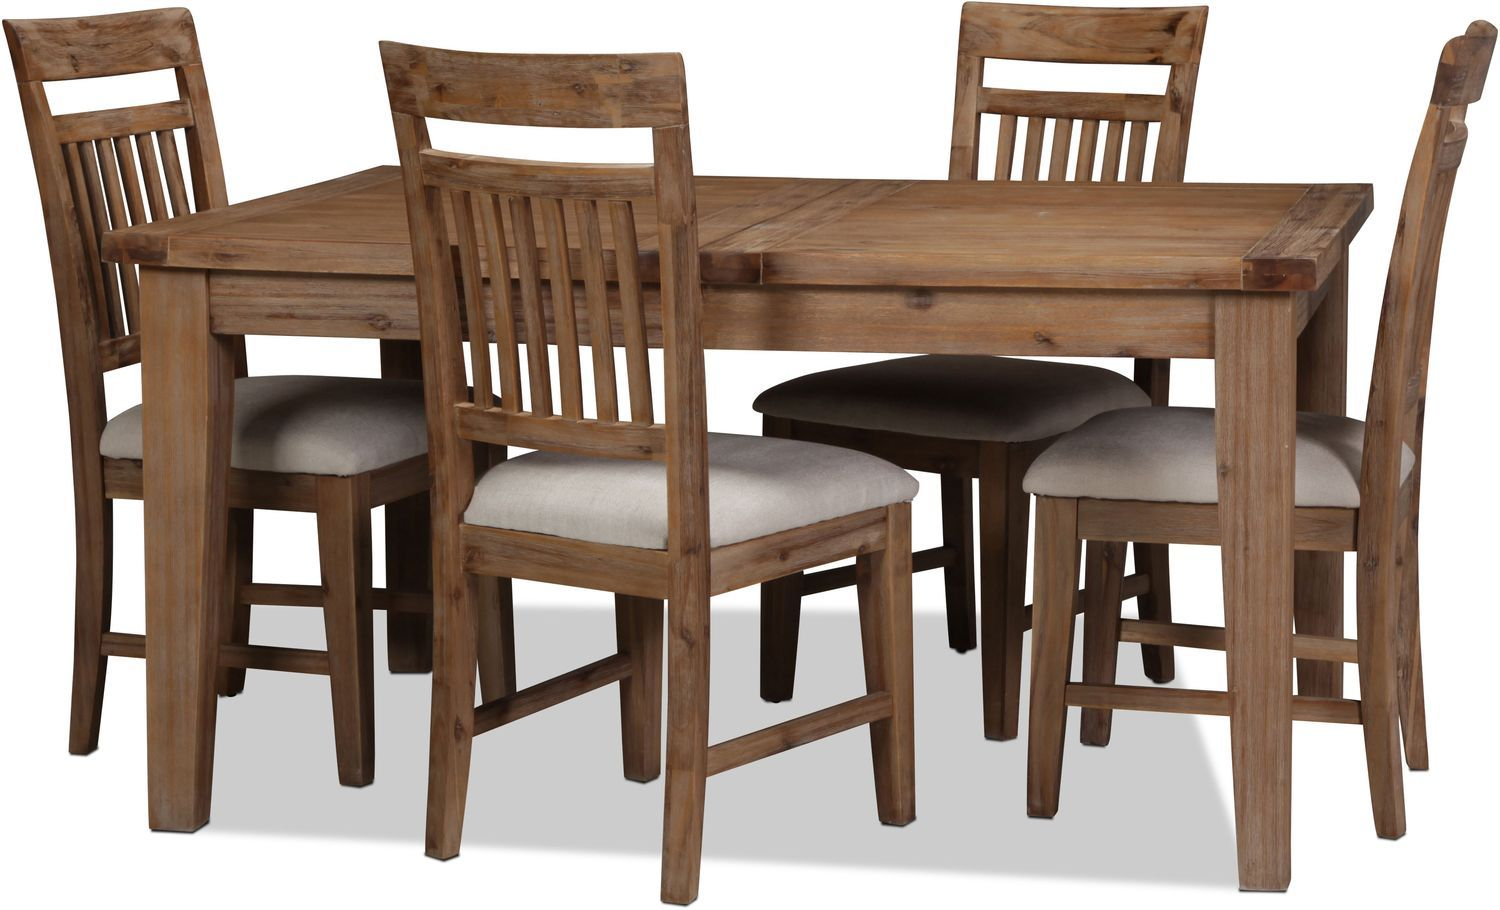 Annabella Table And 4 Chairs Levin Furniture Levin Furniture Furniture Table